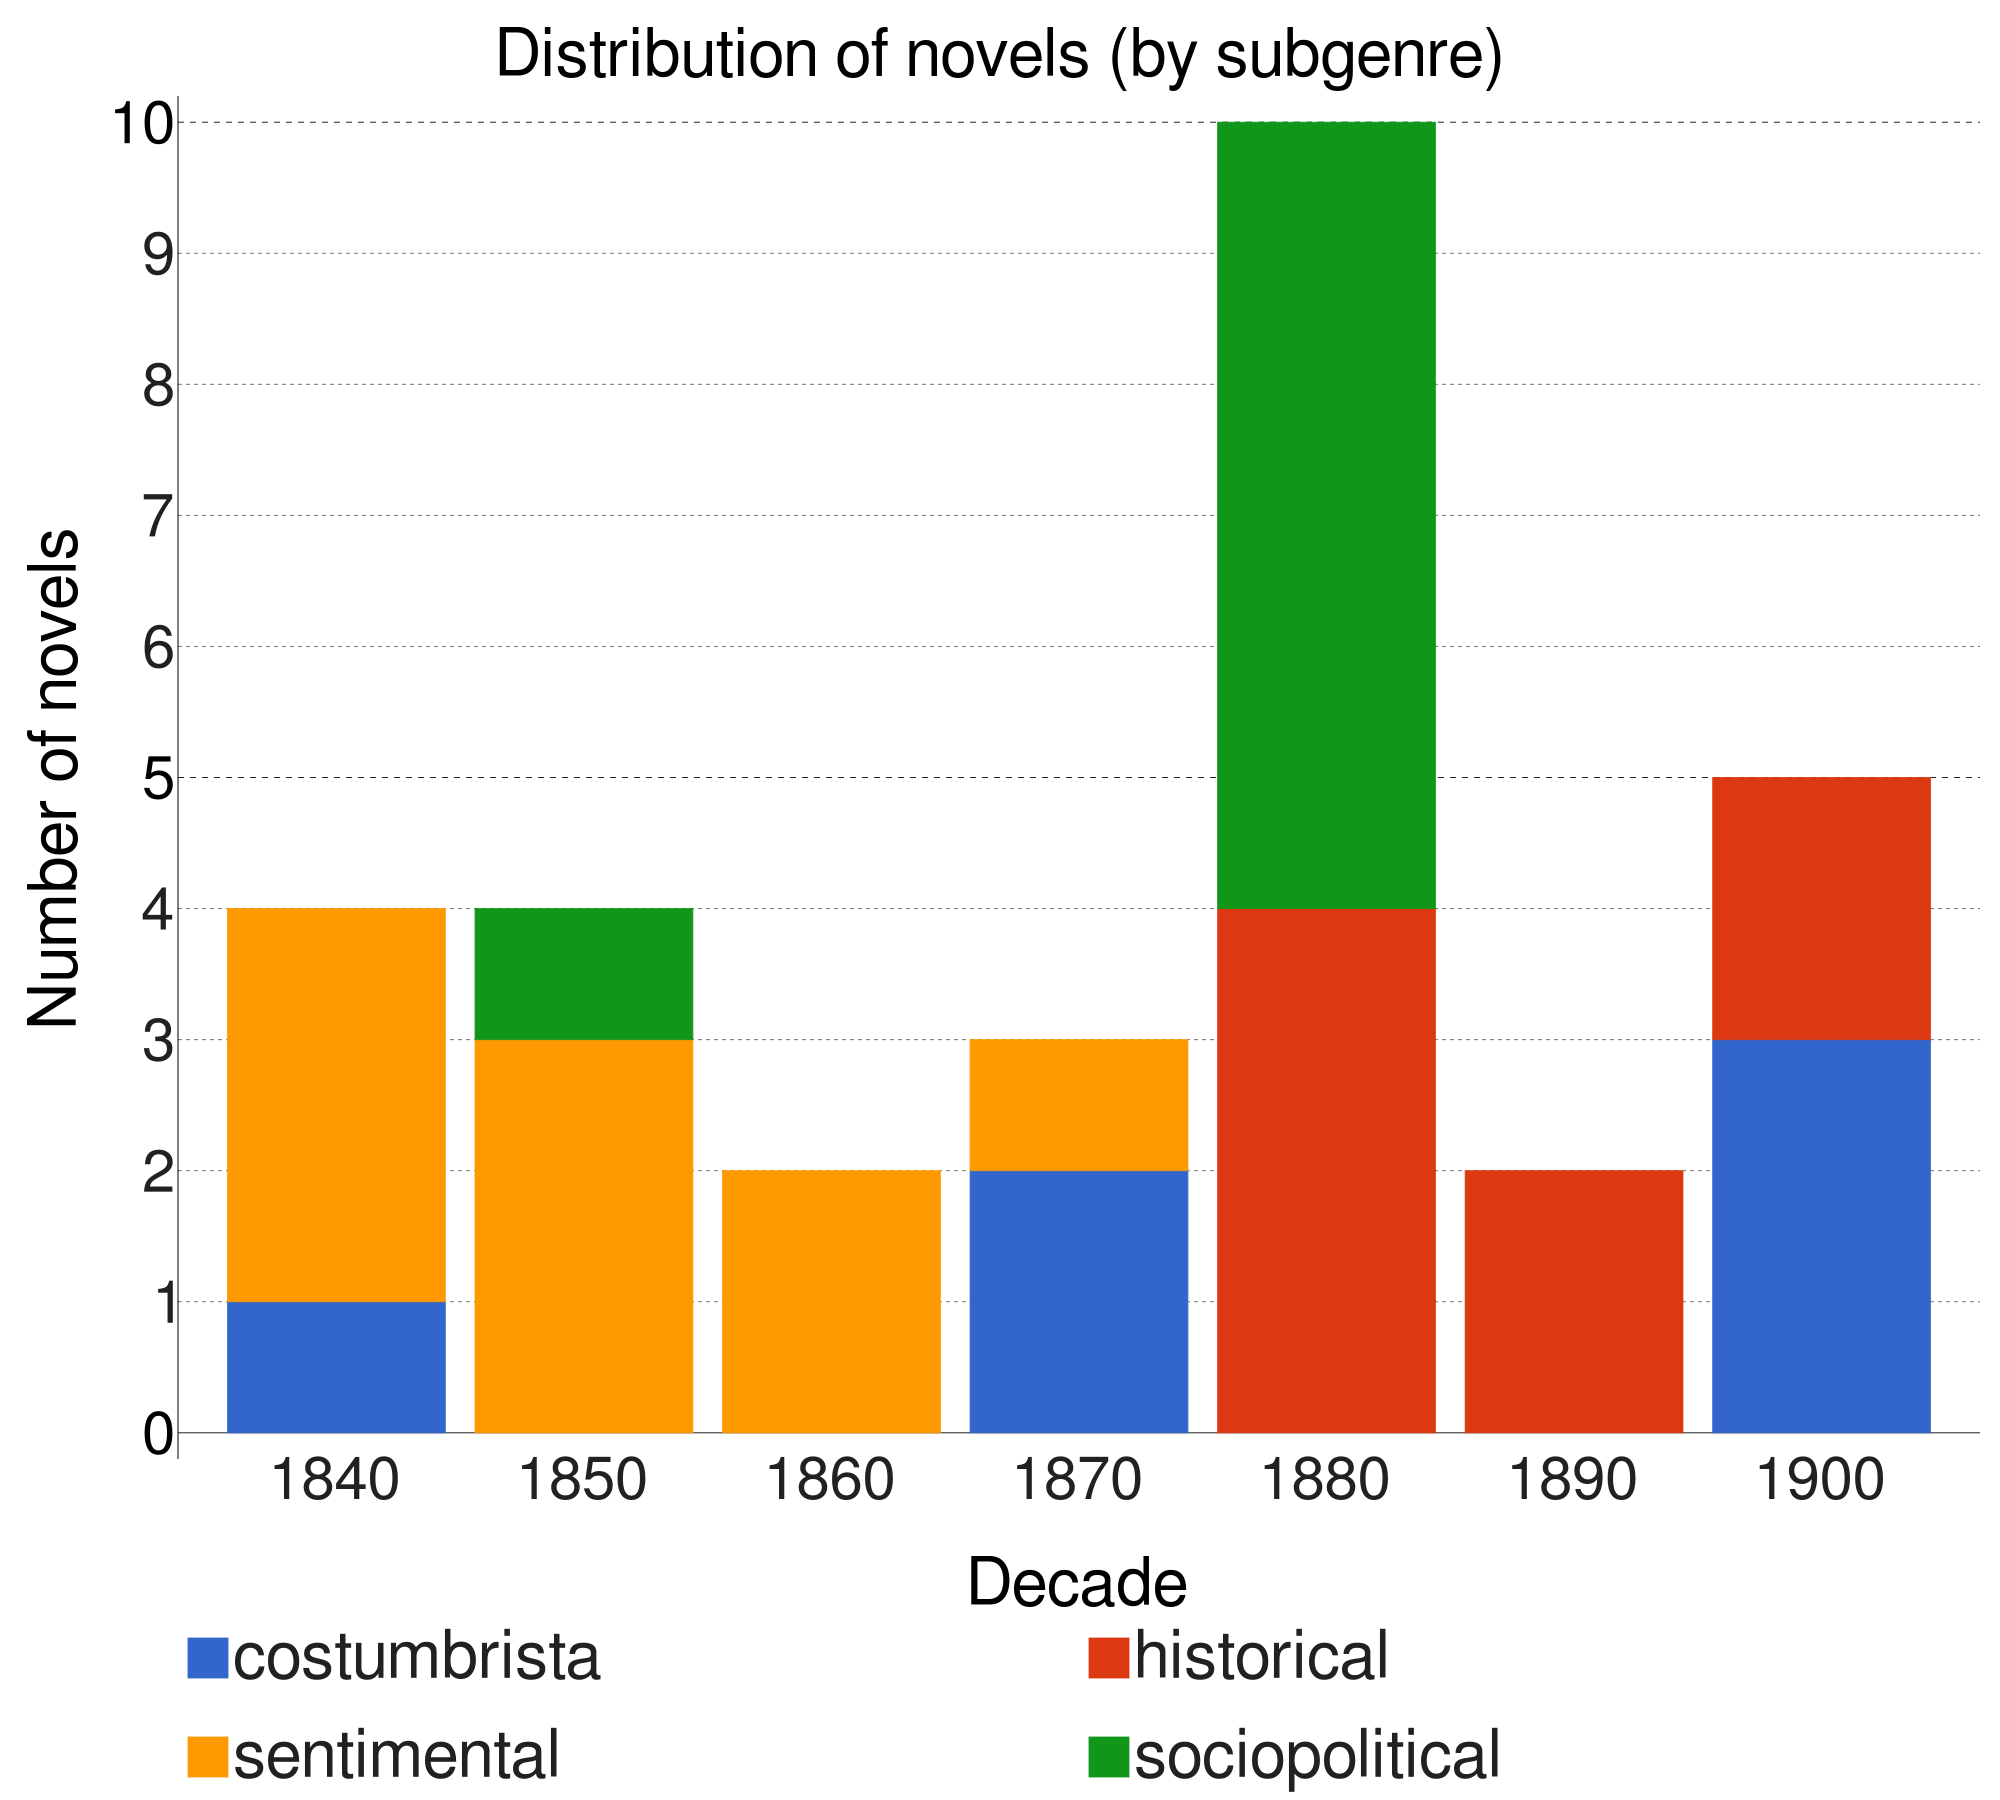 Distribution of novels per decade and subgenre